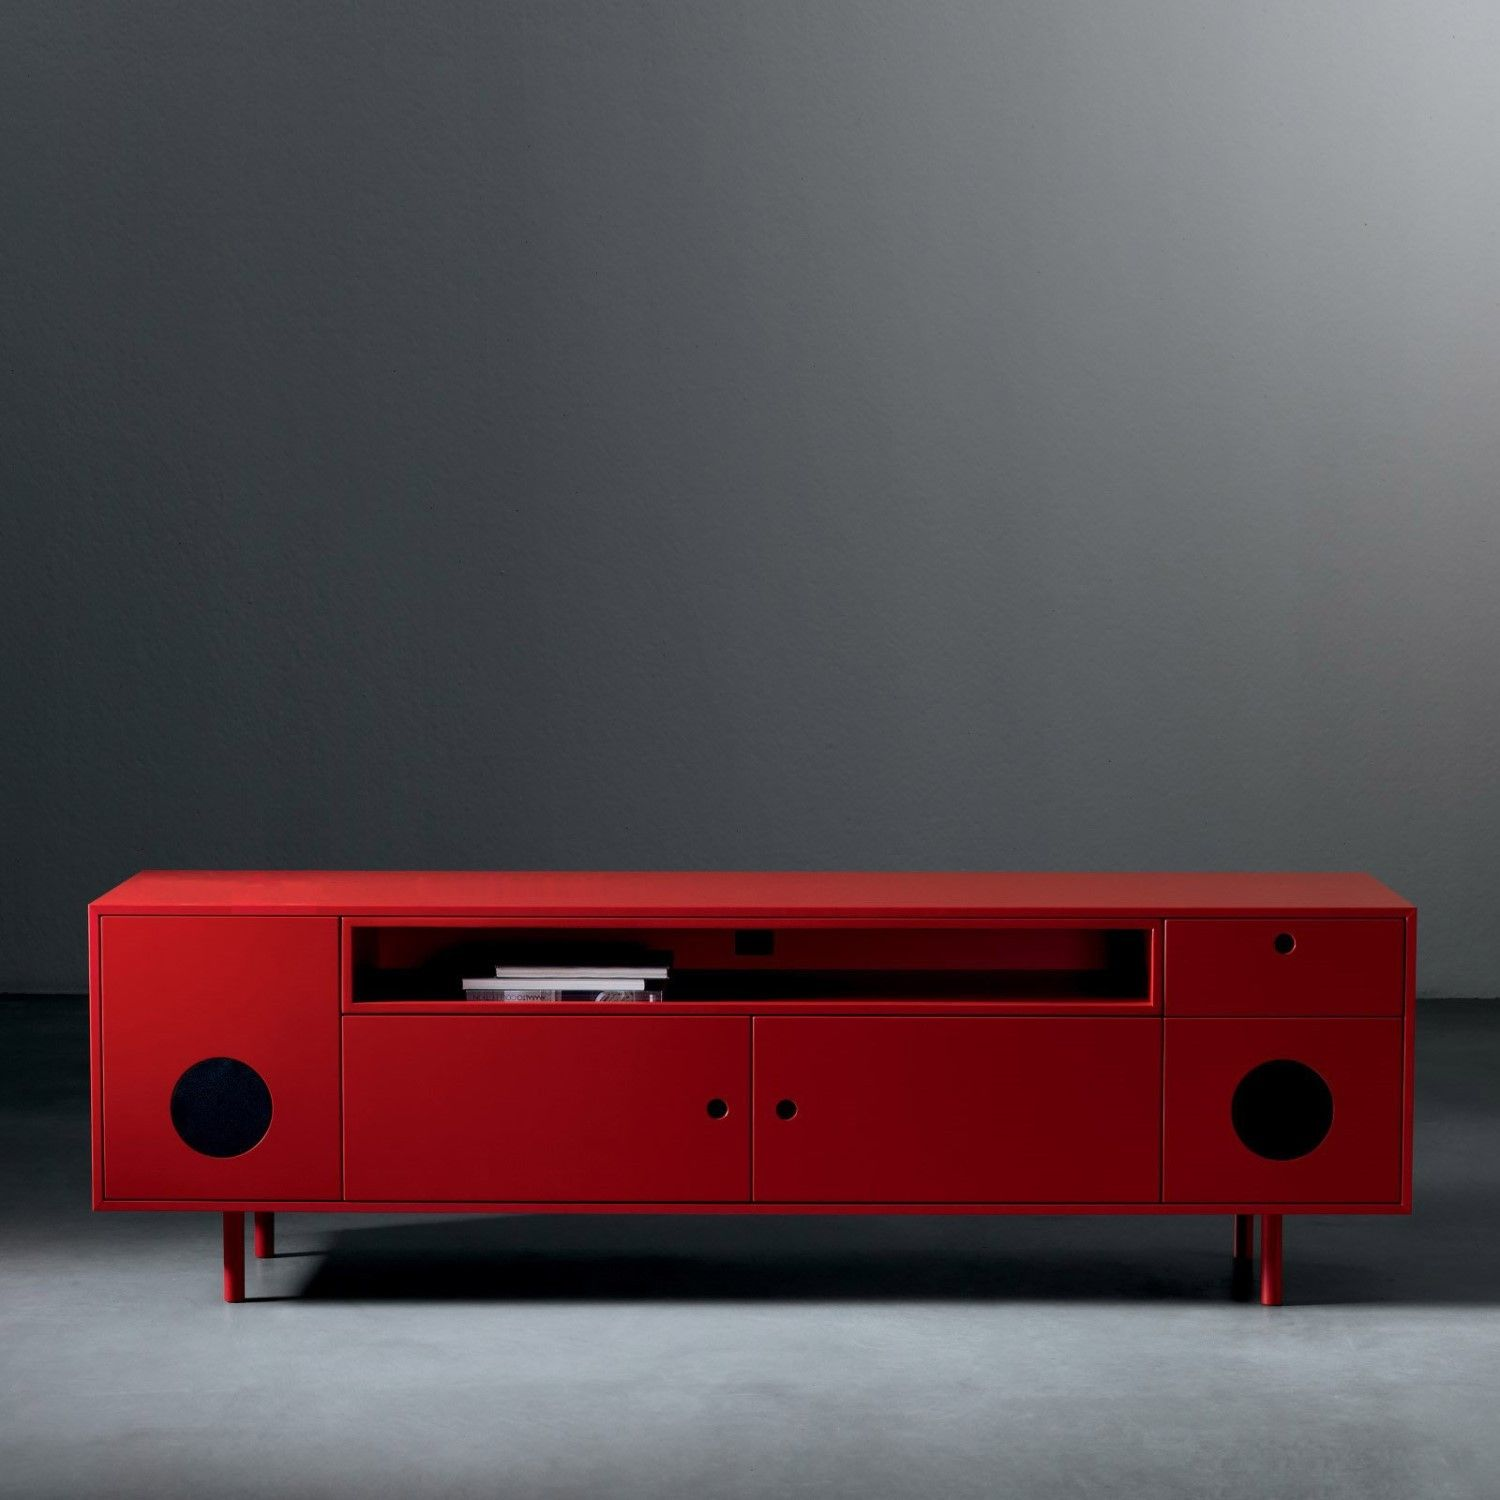 Caixa Tv Stand Cabinet With Built In Speakers Tv Stand Cabinet Build A Tv Stand Fantastic Furniture